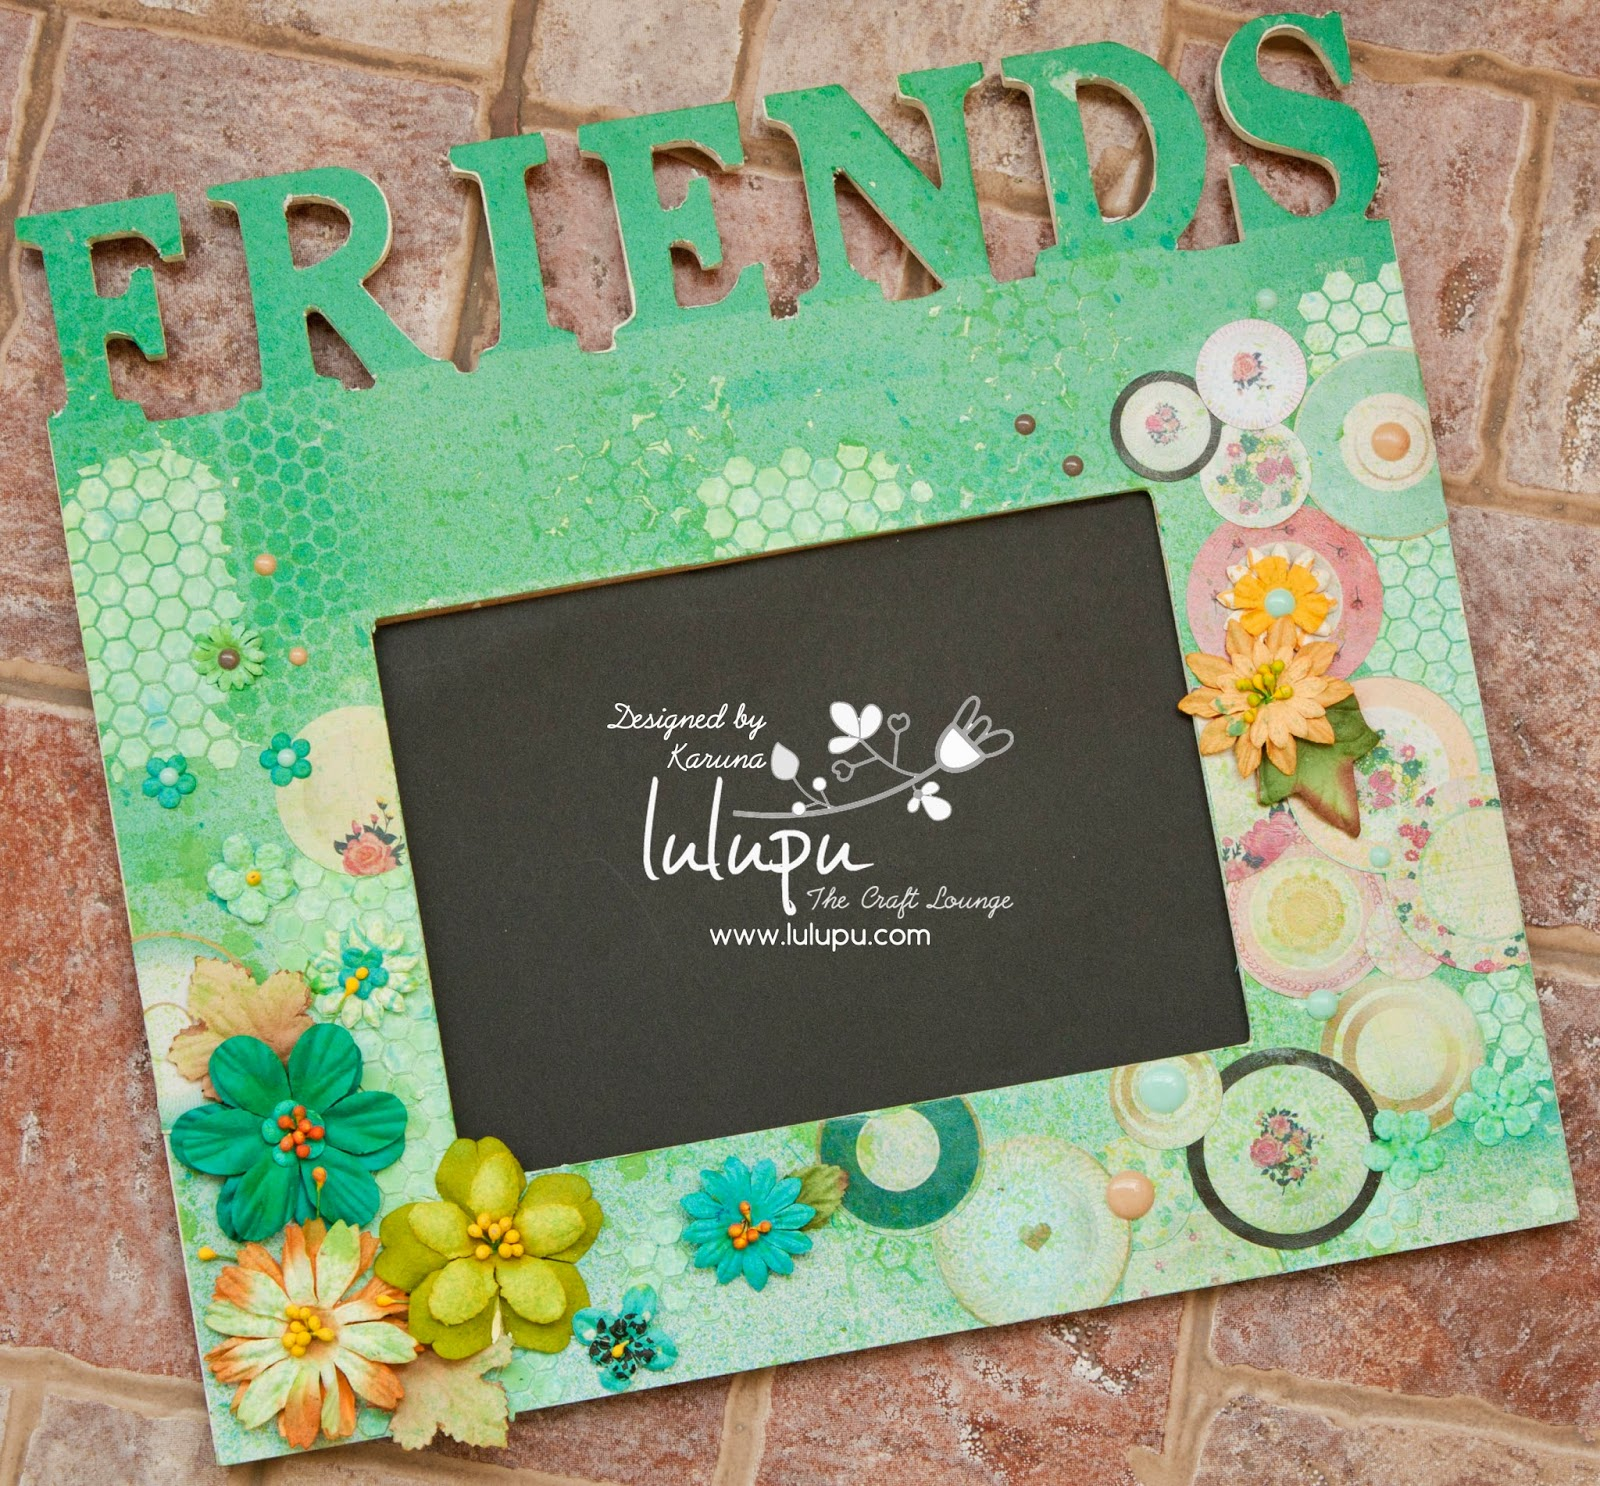 Lulupu - The Craft Lounge: Friends Forever Frame!